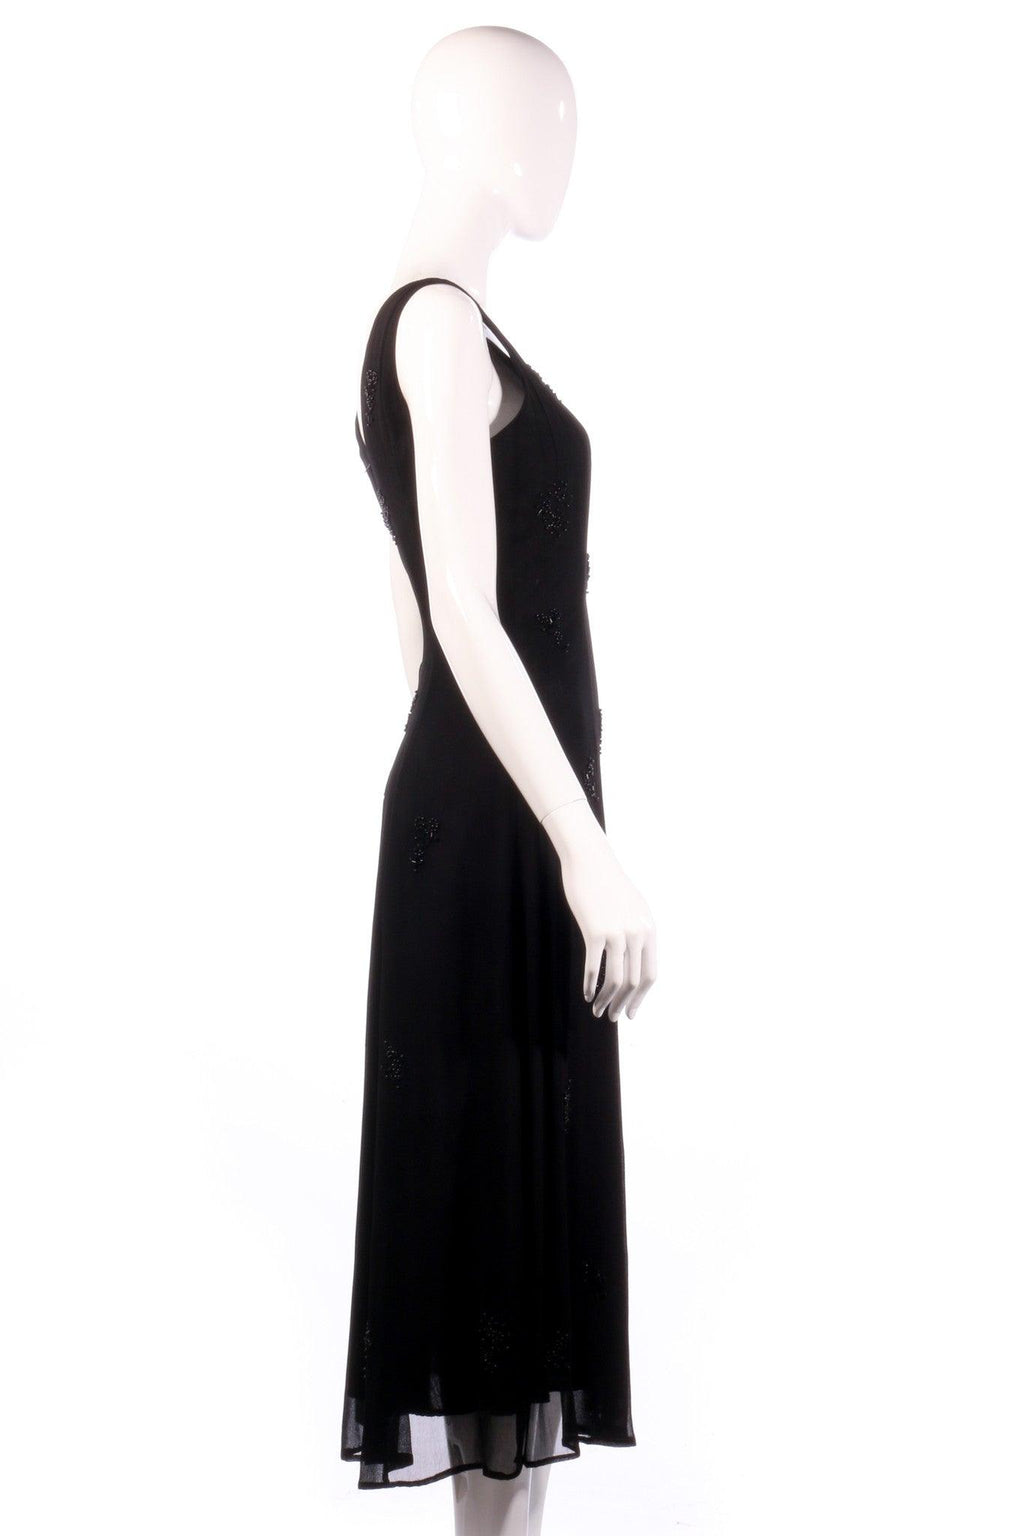 Black Dorothy Perkins beaded black dress size 12